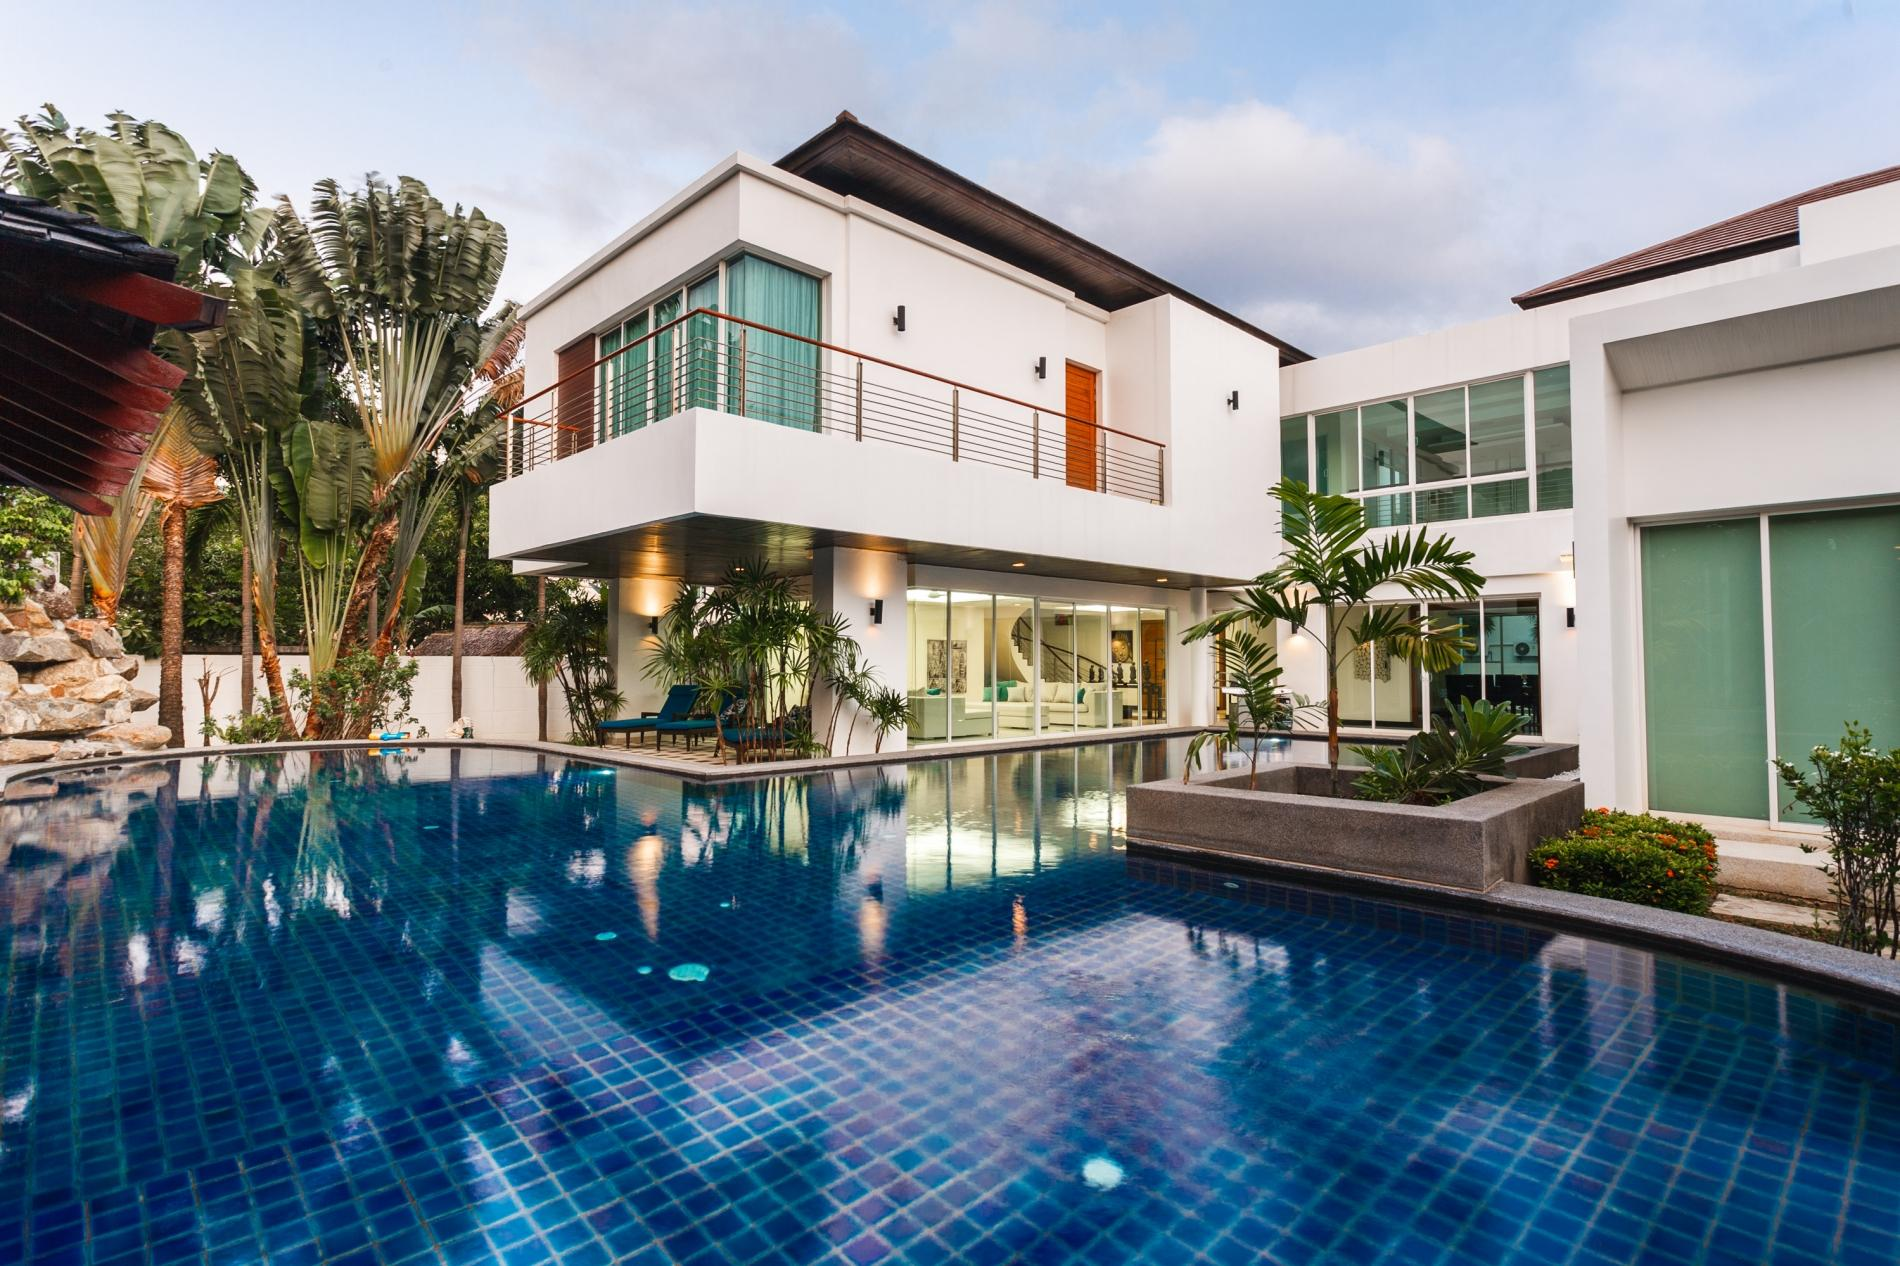 Apartment Kyerra Villa -  Giant private pool in Kamala  pool table  ping pong table  photo 20179553